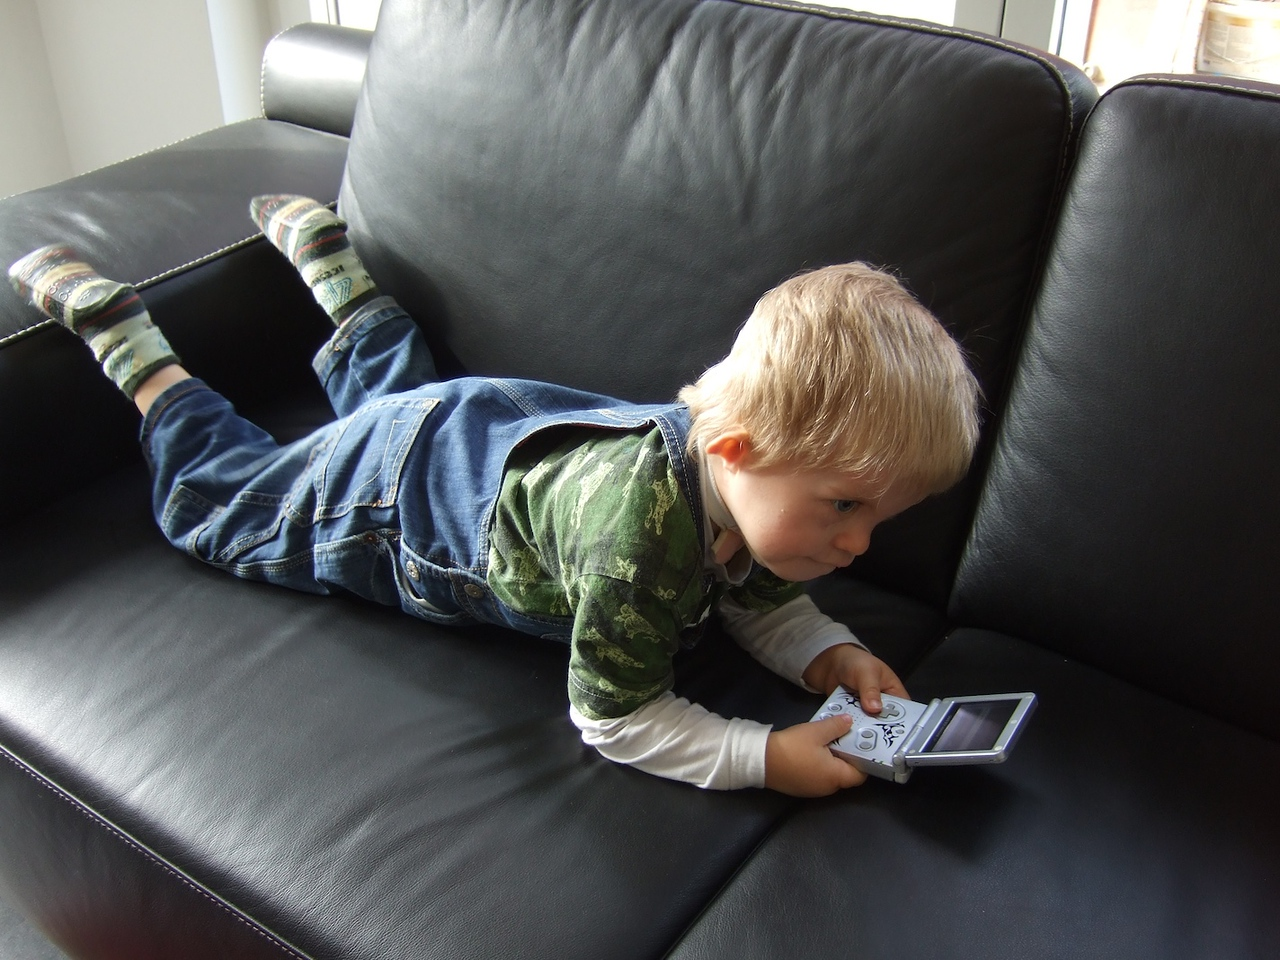 Sunday 9th Nov 2008 - Cai gets some peace and quiet to play gameboy on his own